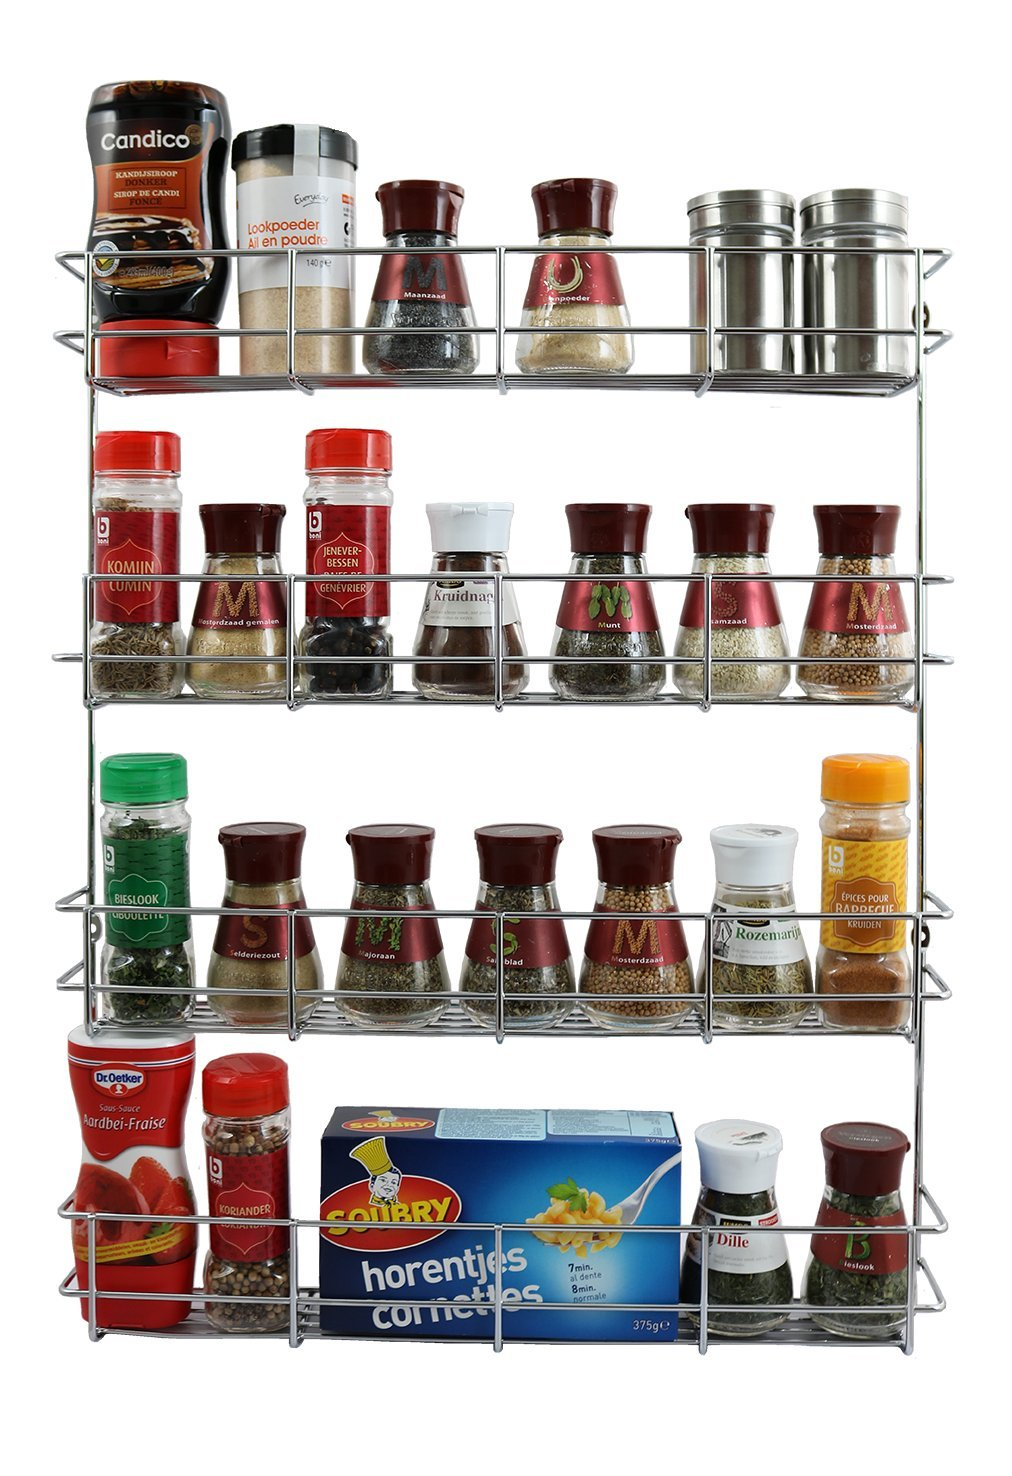 4 Tier Spice Rack - Cabinet Door and Wall Mountable Spice Rack - Herb Rack Chrome - Kitchen Cupboard Storage Organizer by Coninx - Holds 32 Jars